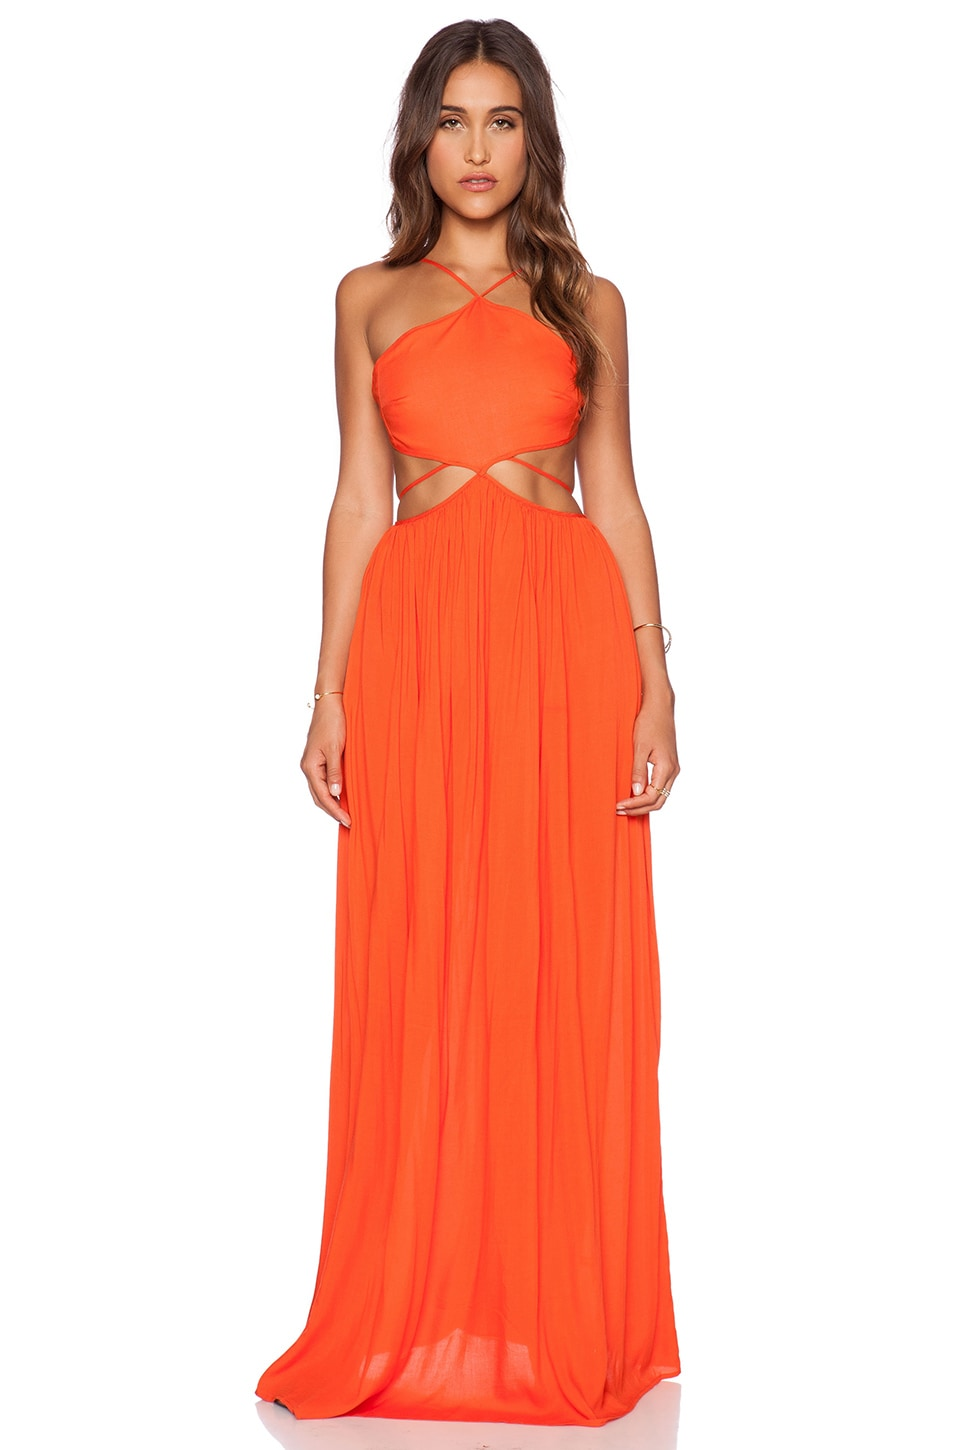 THE JETSET DIARIES Carnivale Maxi Dress in Mandarin